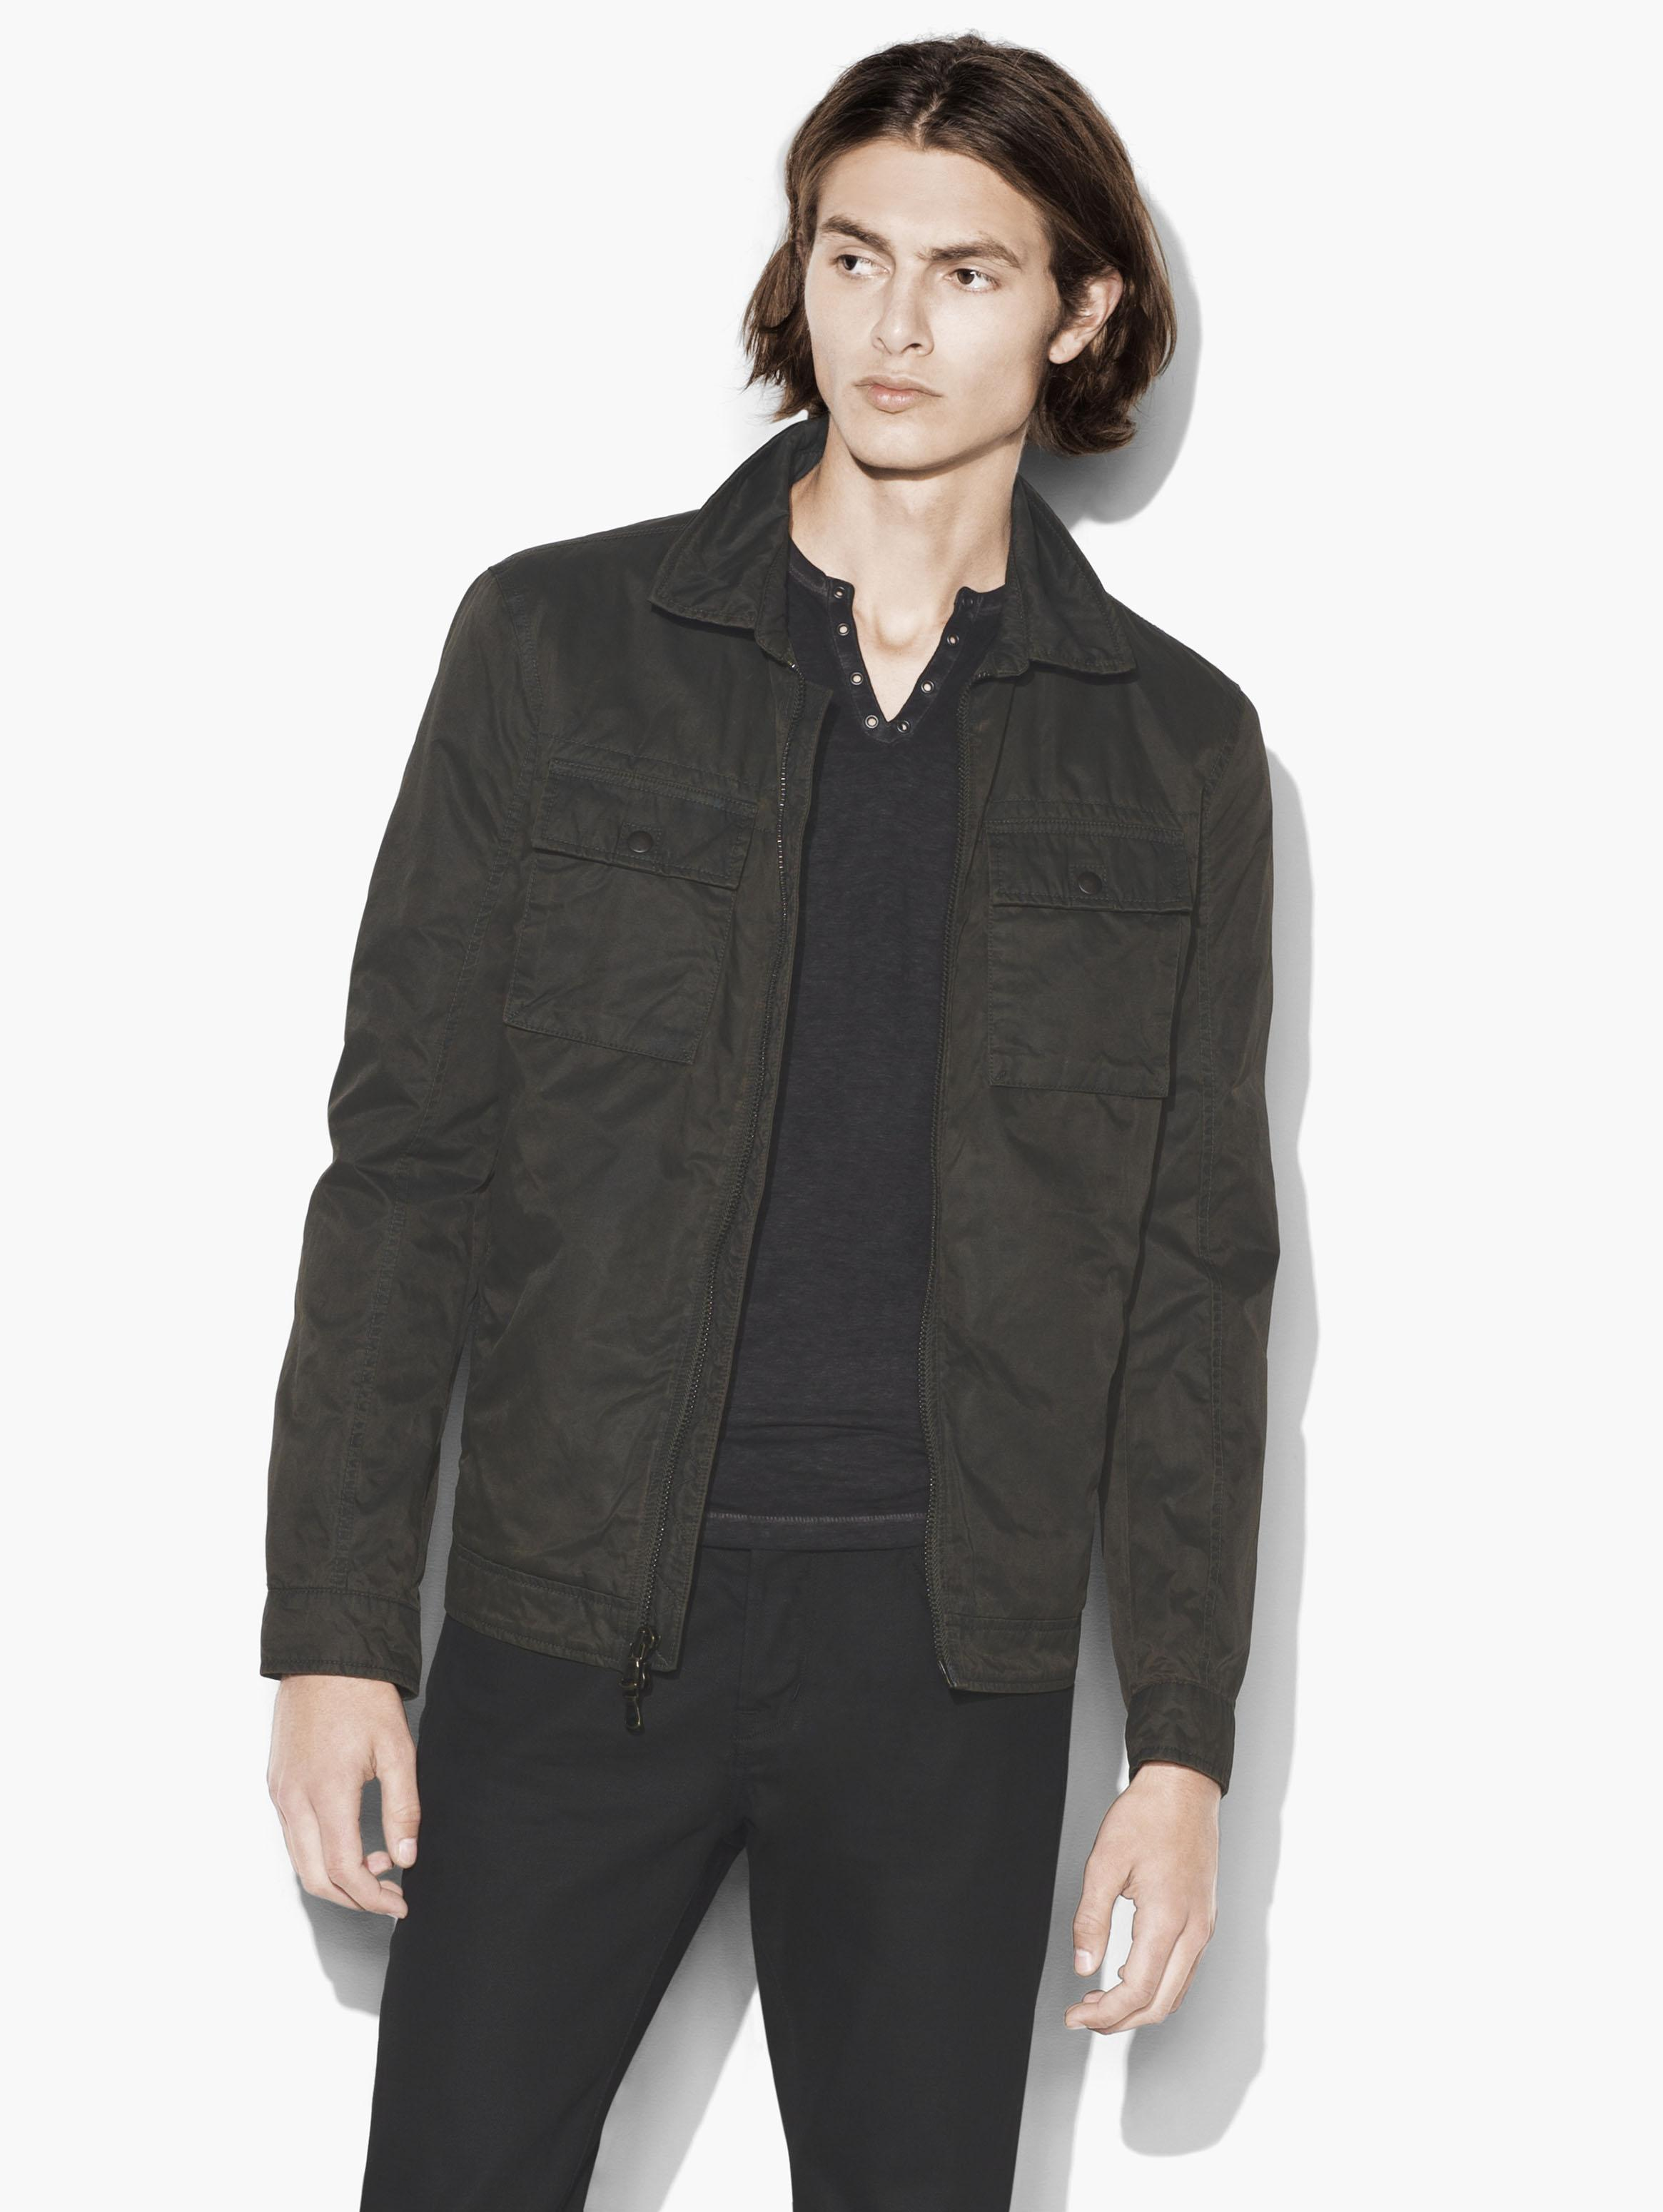 Patch Pocket Military Jacket